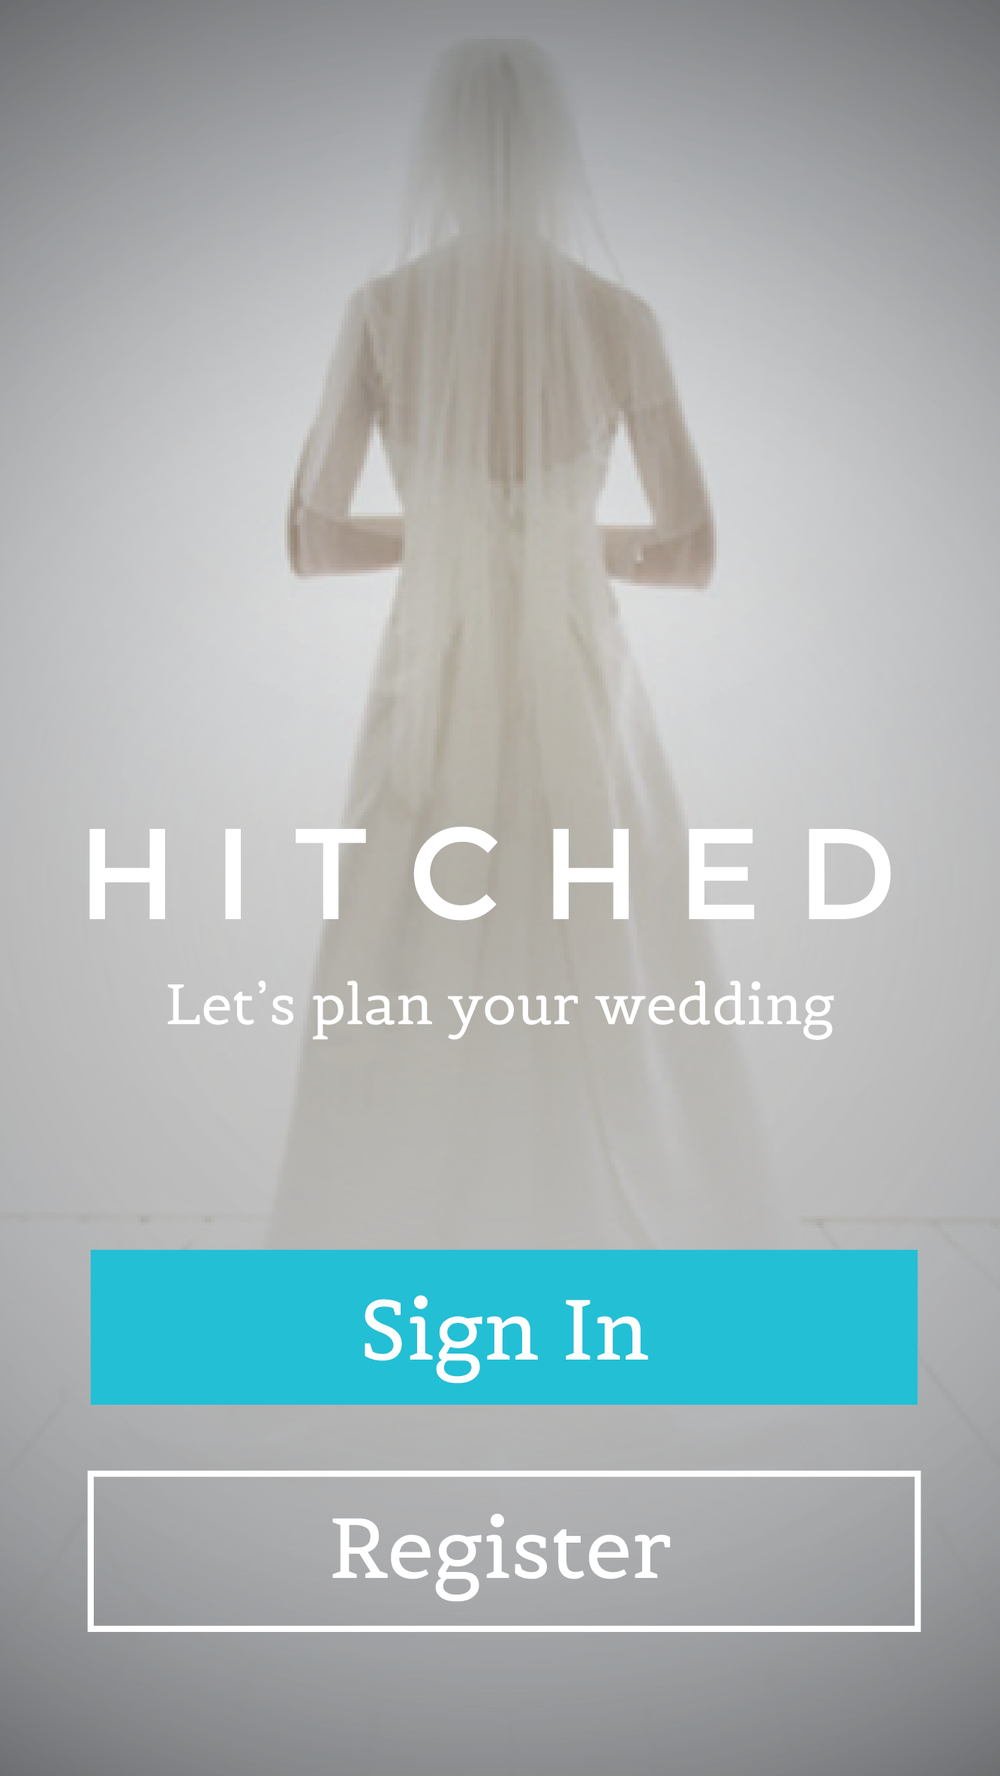 hitched-app_Main page.png